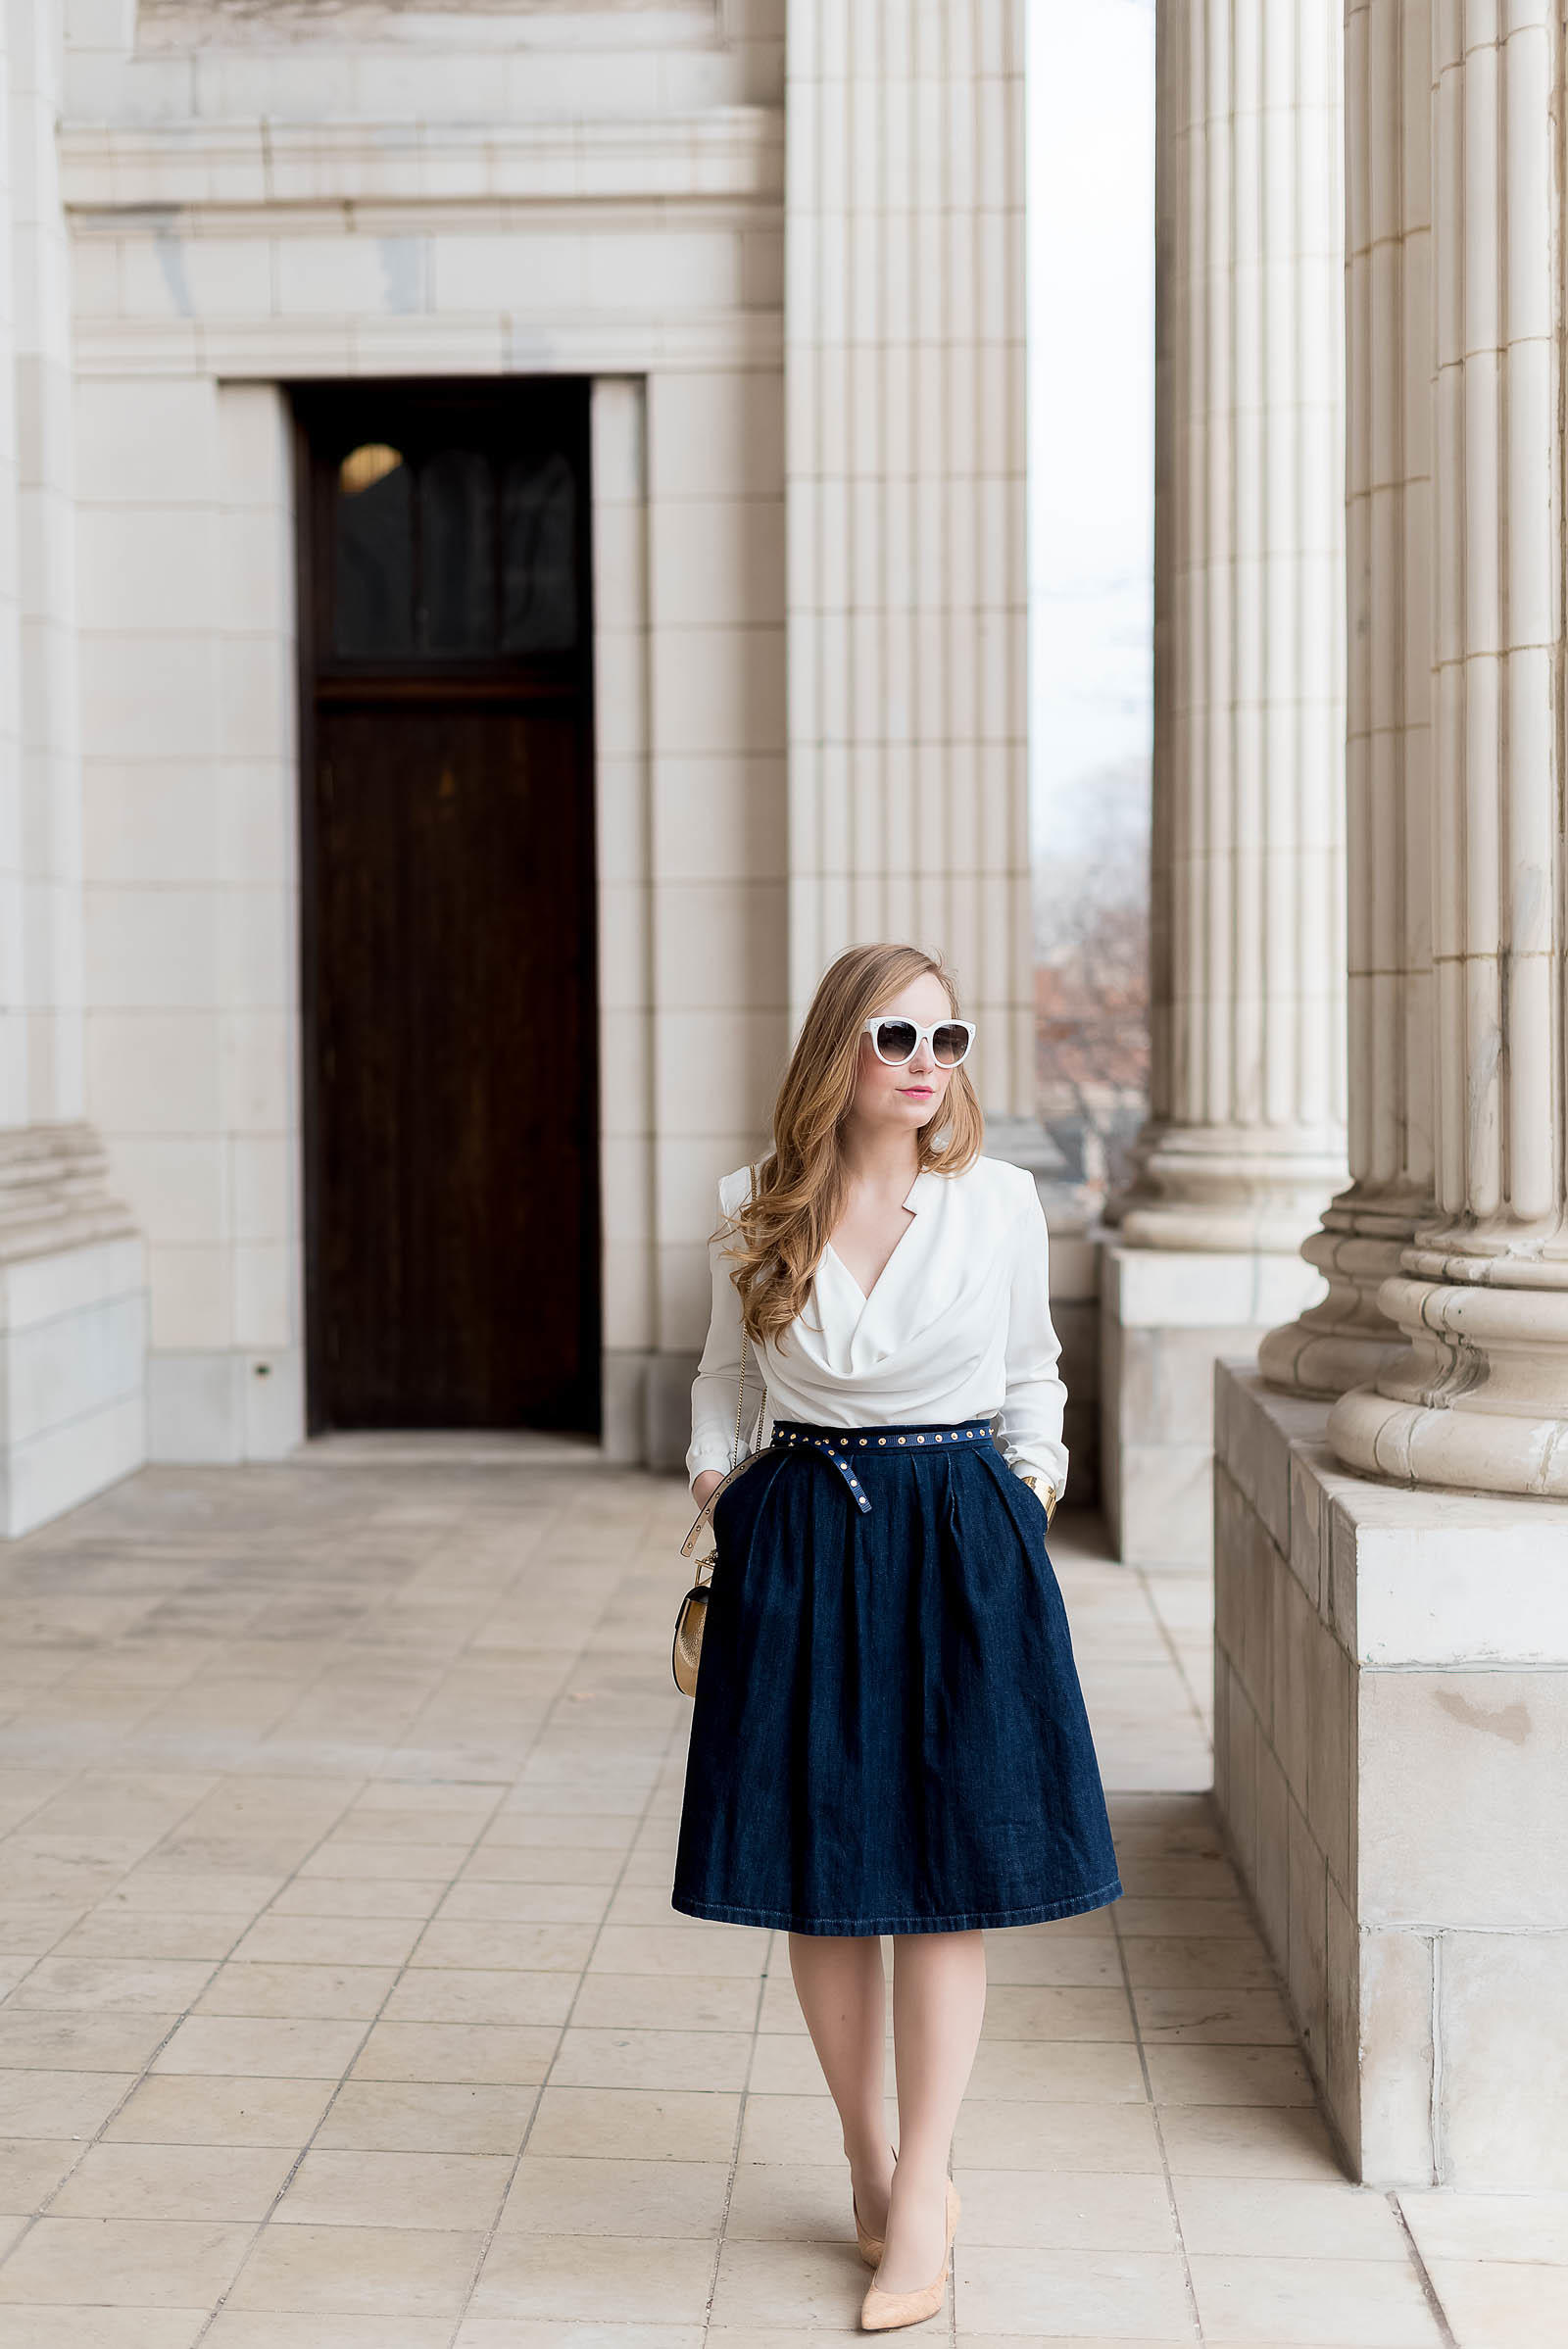 Jean Classic White Blouse Stud Outfit